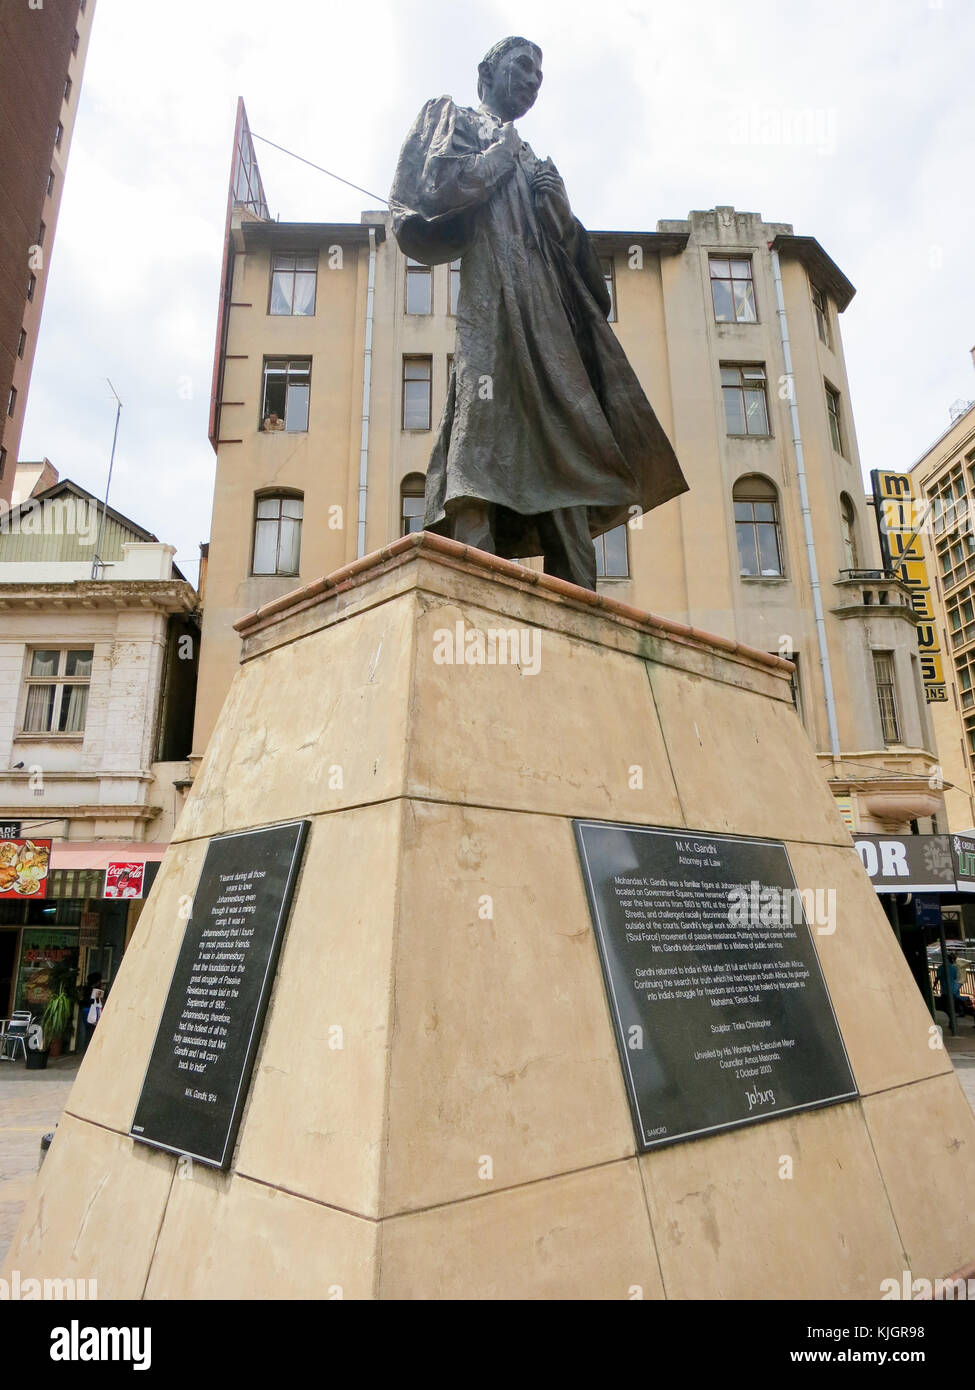 Johannesburg, South Africa - January 17, 2012: Mahatma Gandhi Statue in Gandhi Square, Johannesburg, is a bronze - Stock Image